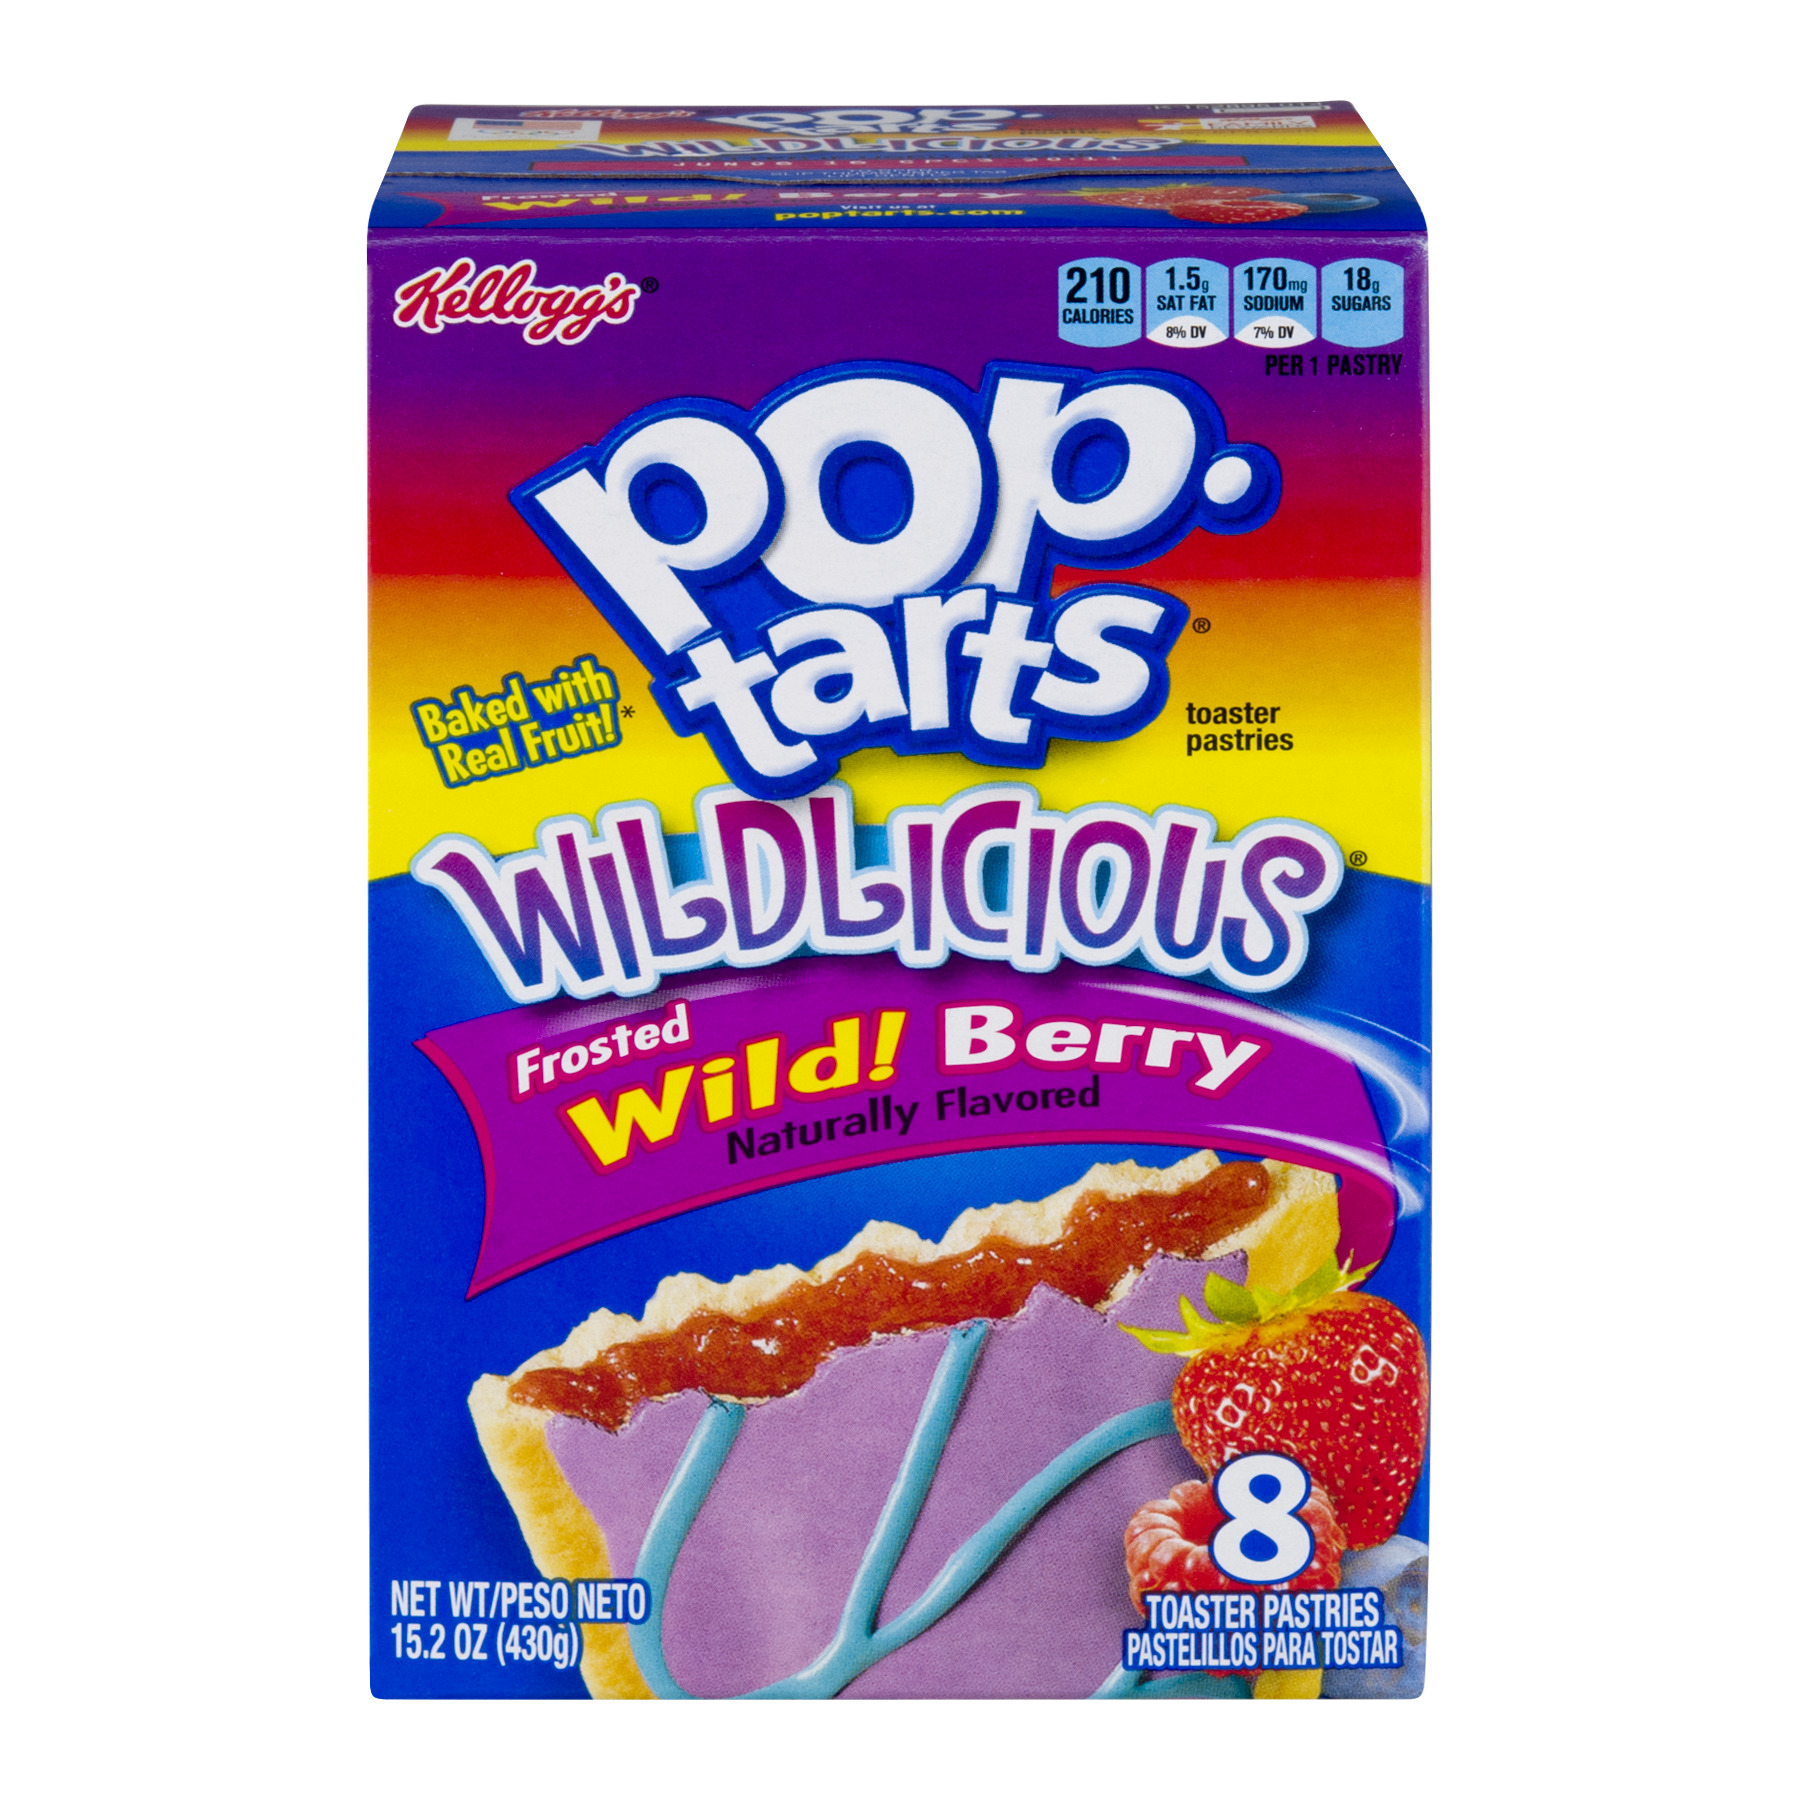 Kellogg's Pop-Tarts Wildlicious Frosted Wild! Berry, 8ct 15.2 OZ